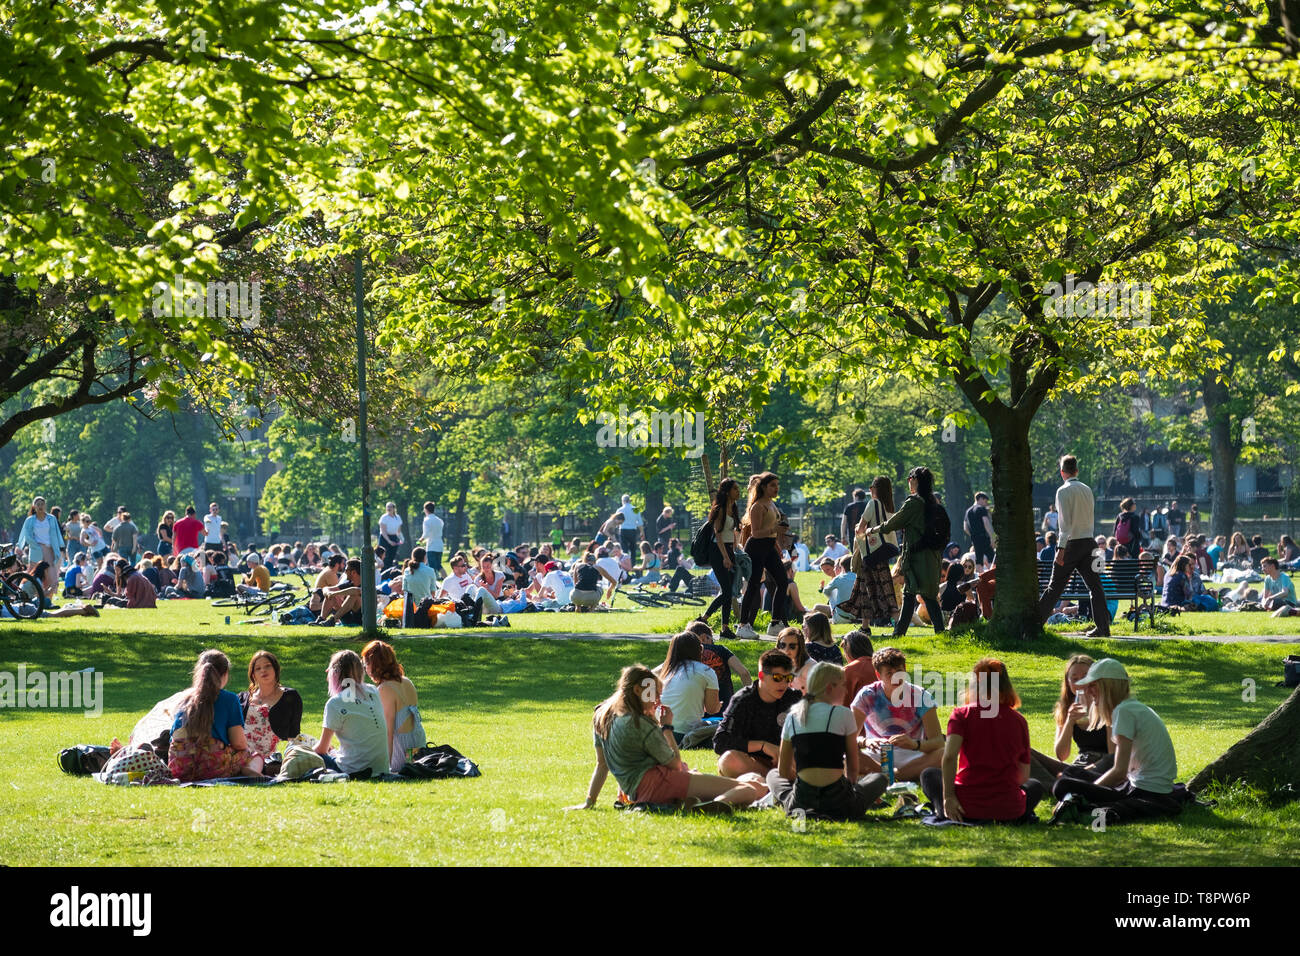 Edinburgh, Scotland, UK. 14 May 2019. Warm sunny weather in the capital brought hundreds of people to The Meadows park in the afternoon to enjoy the sun. The park is adjacent to Edinburgh University and it seemed that most of the crowd were students taking a break from studying for upcoming exams Credit: Iain Masterton/Alamy Live News Stock Photo